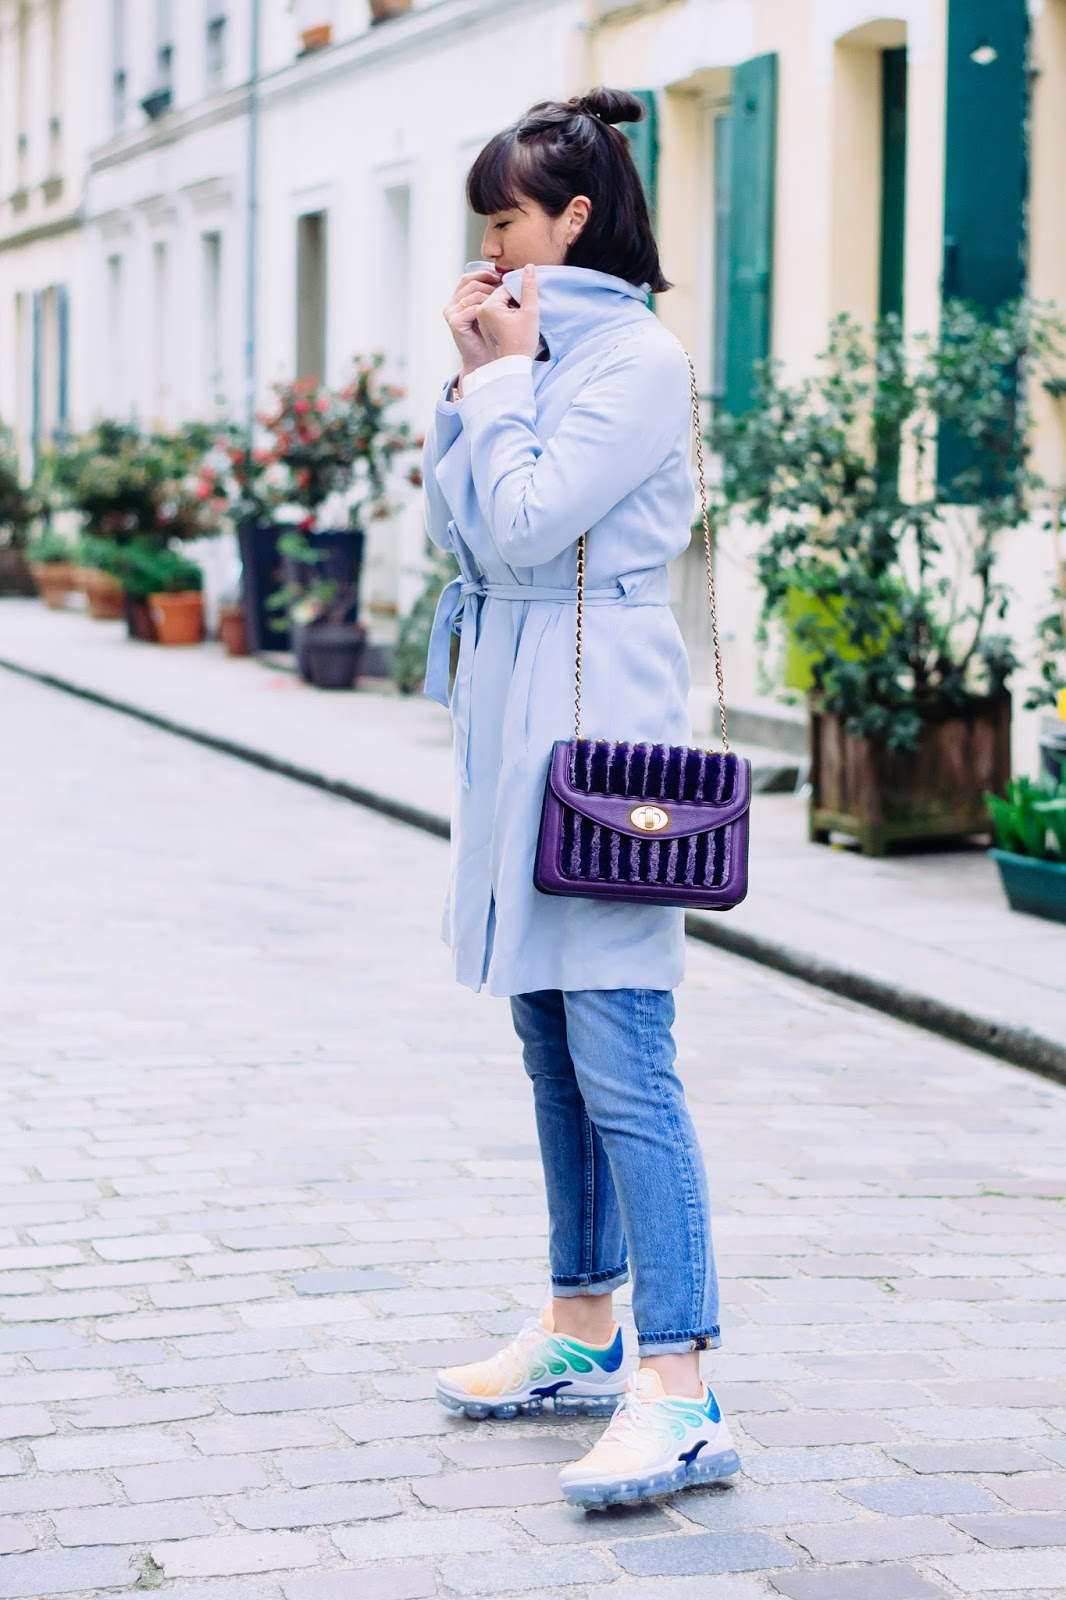 parisianfashionblogger-sytle-look-mode-fashion-steetstyle-paris-cuteparistyle